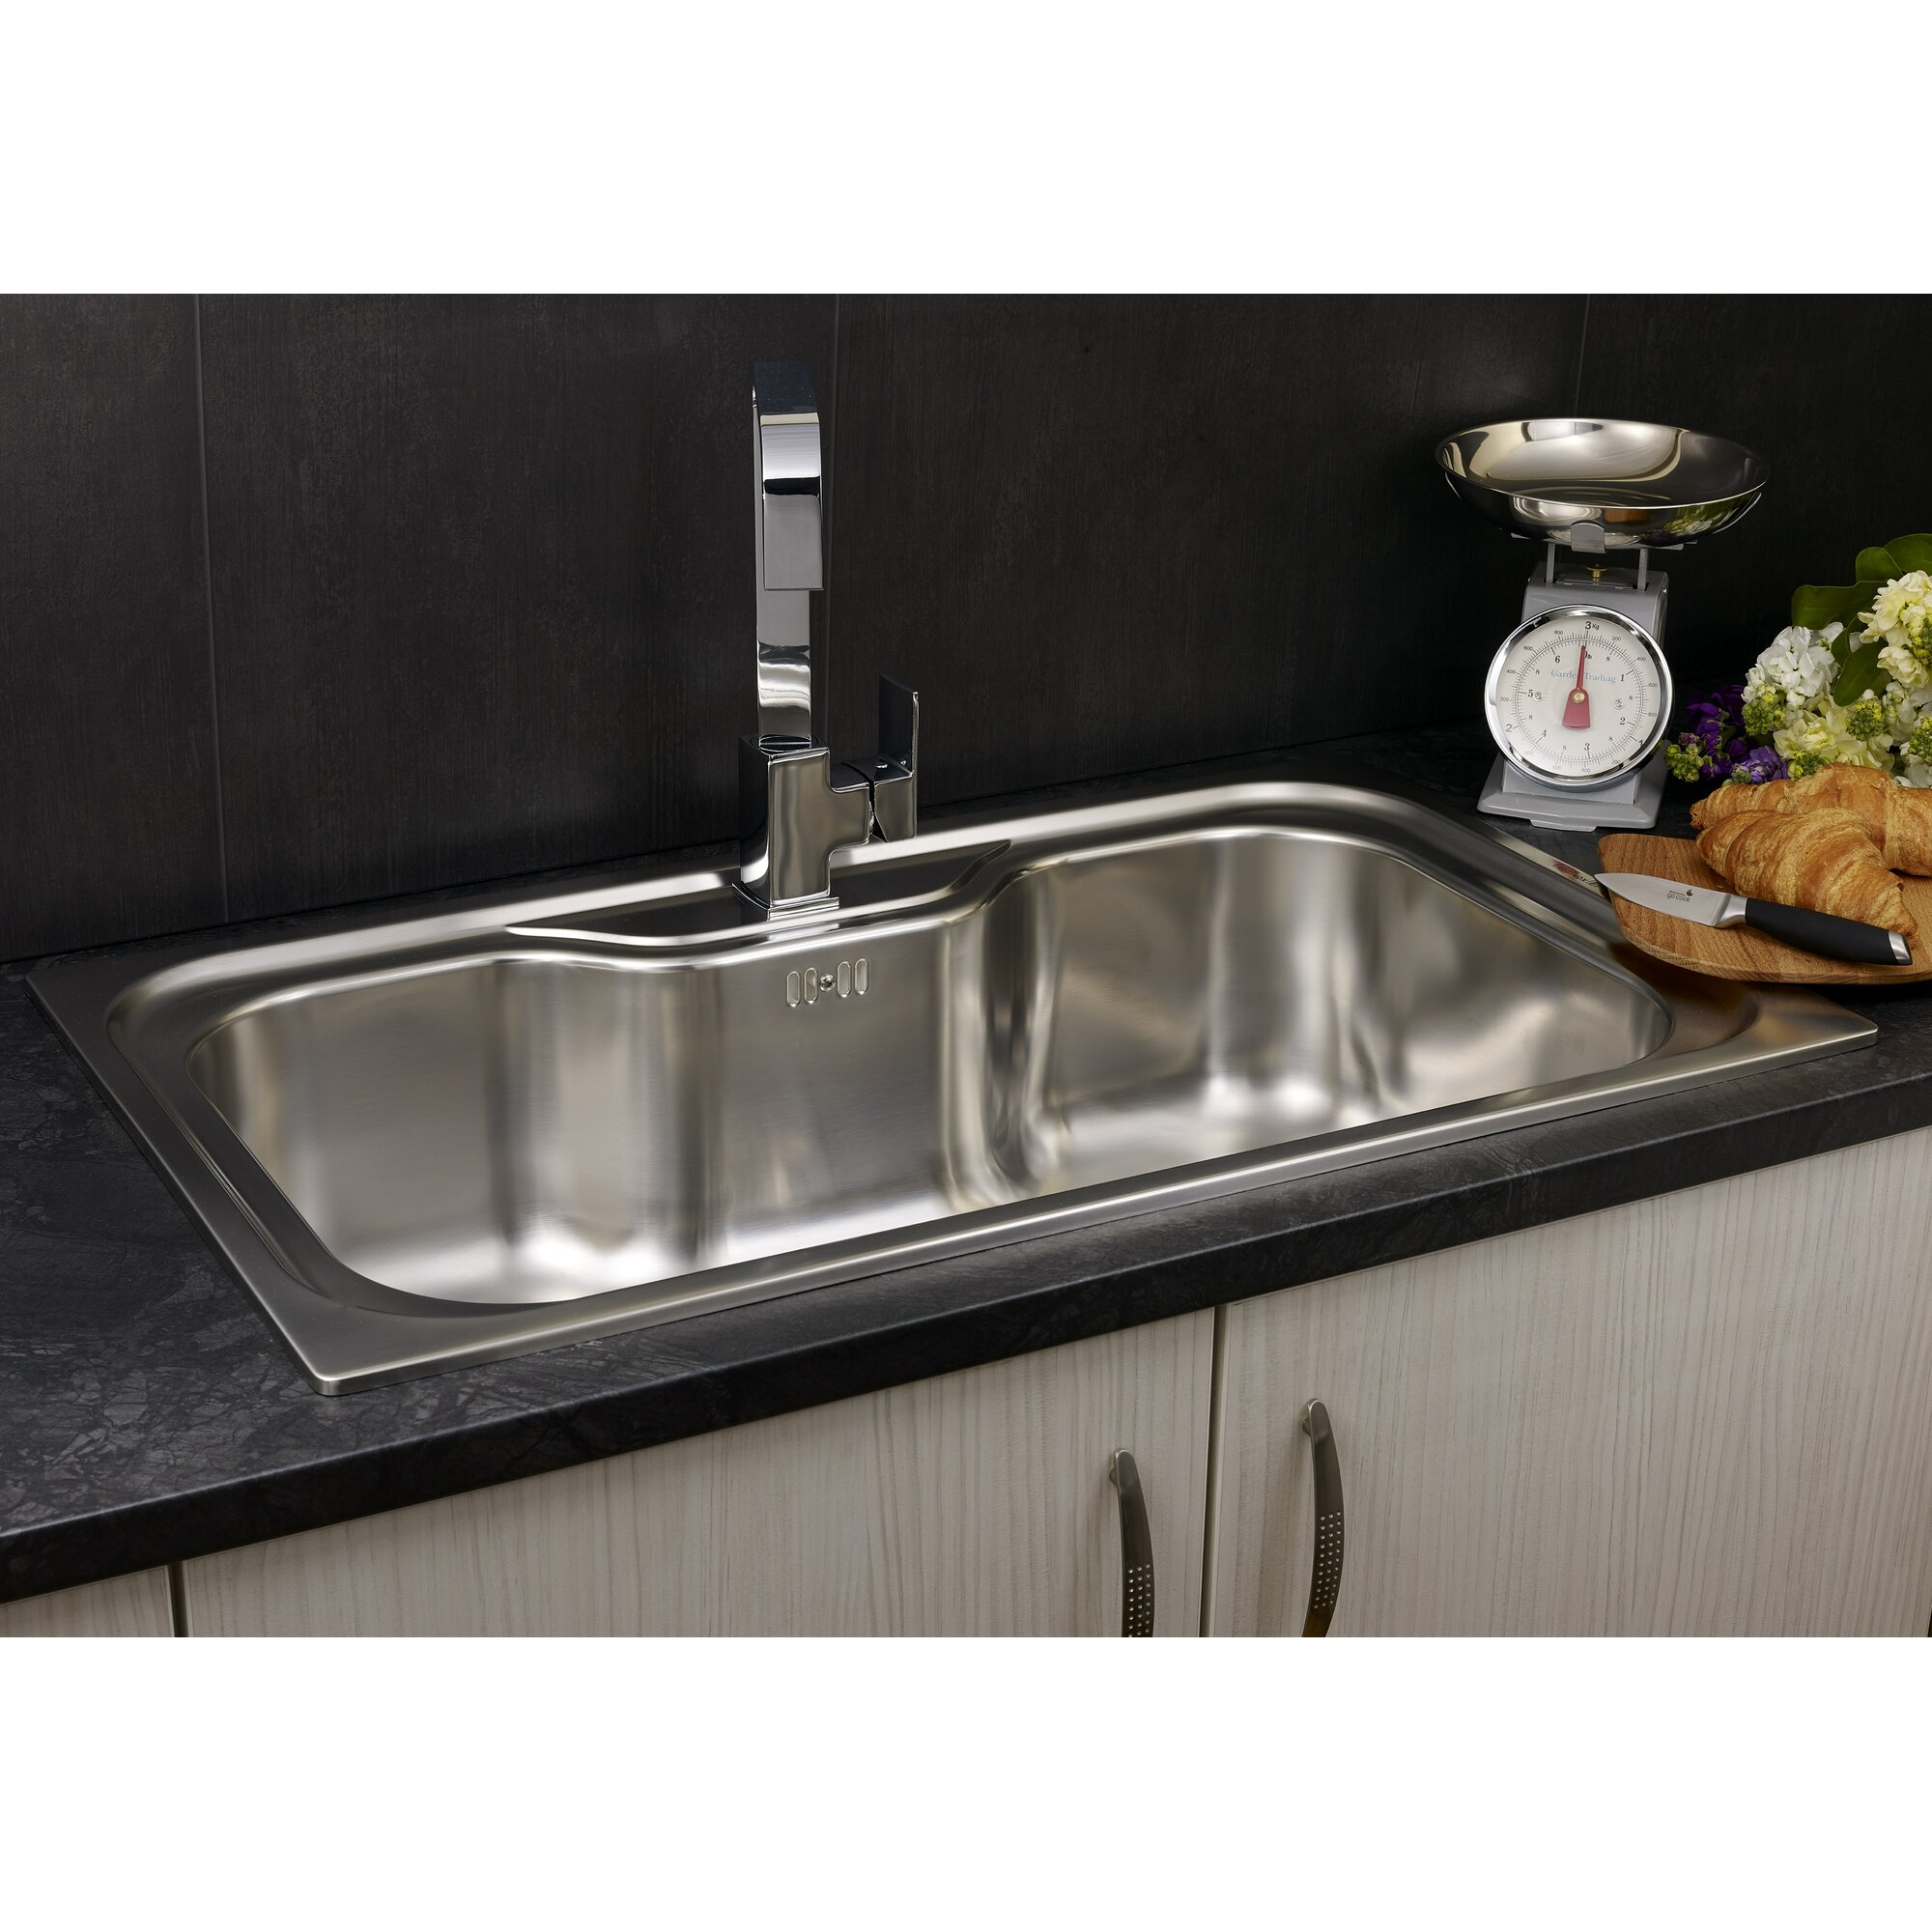 116 cm stainless steel double bowl single drainer inset sink right - Jumbo 86cm X 51cm Single Bowl Inset Kitchen Sink